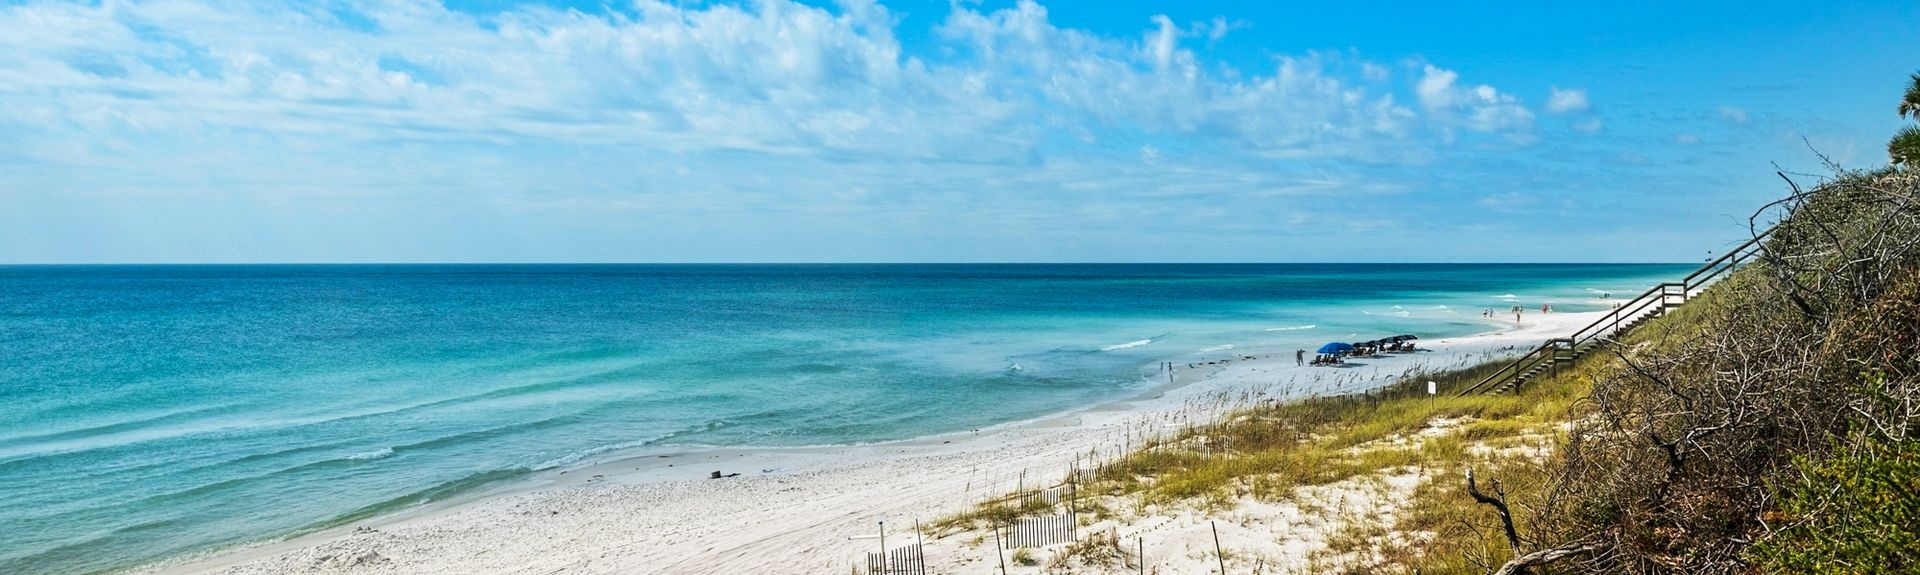 Grove by the Sea, Seagrove Beach, FL, USA